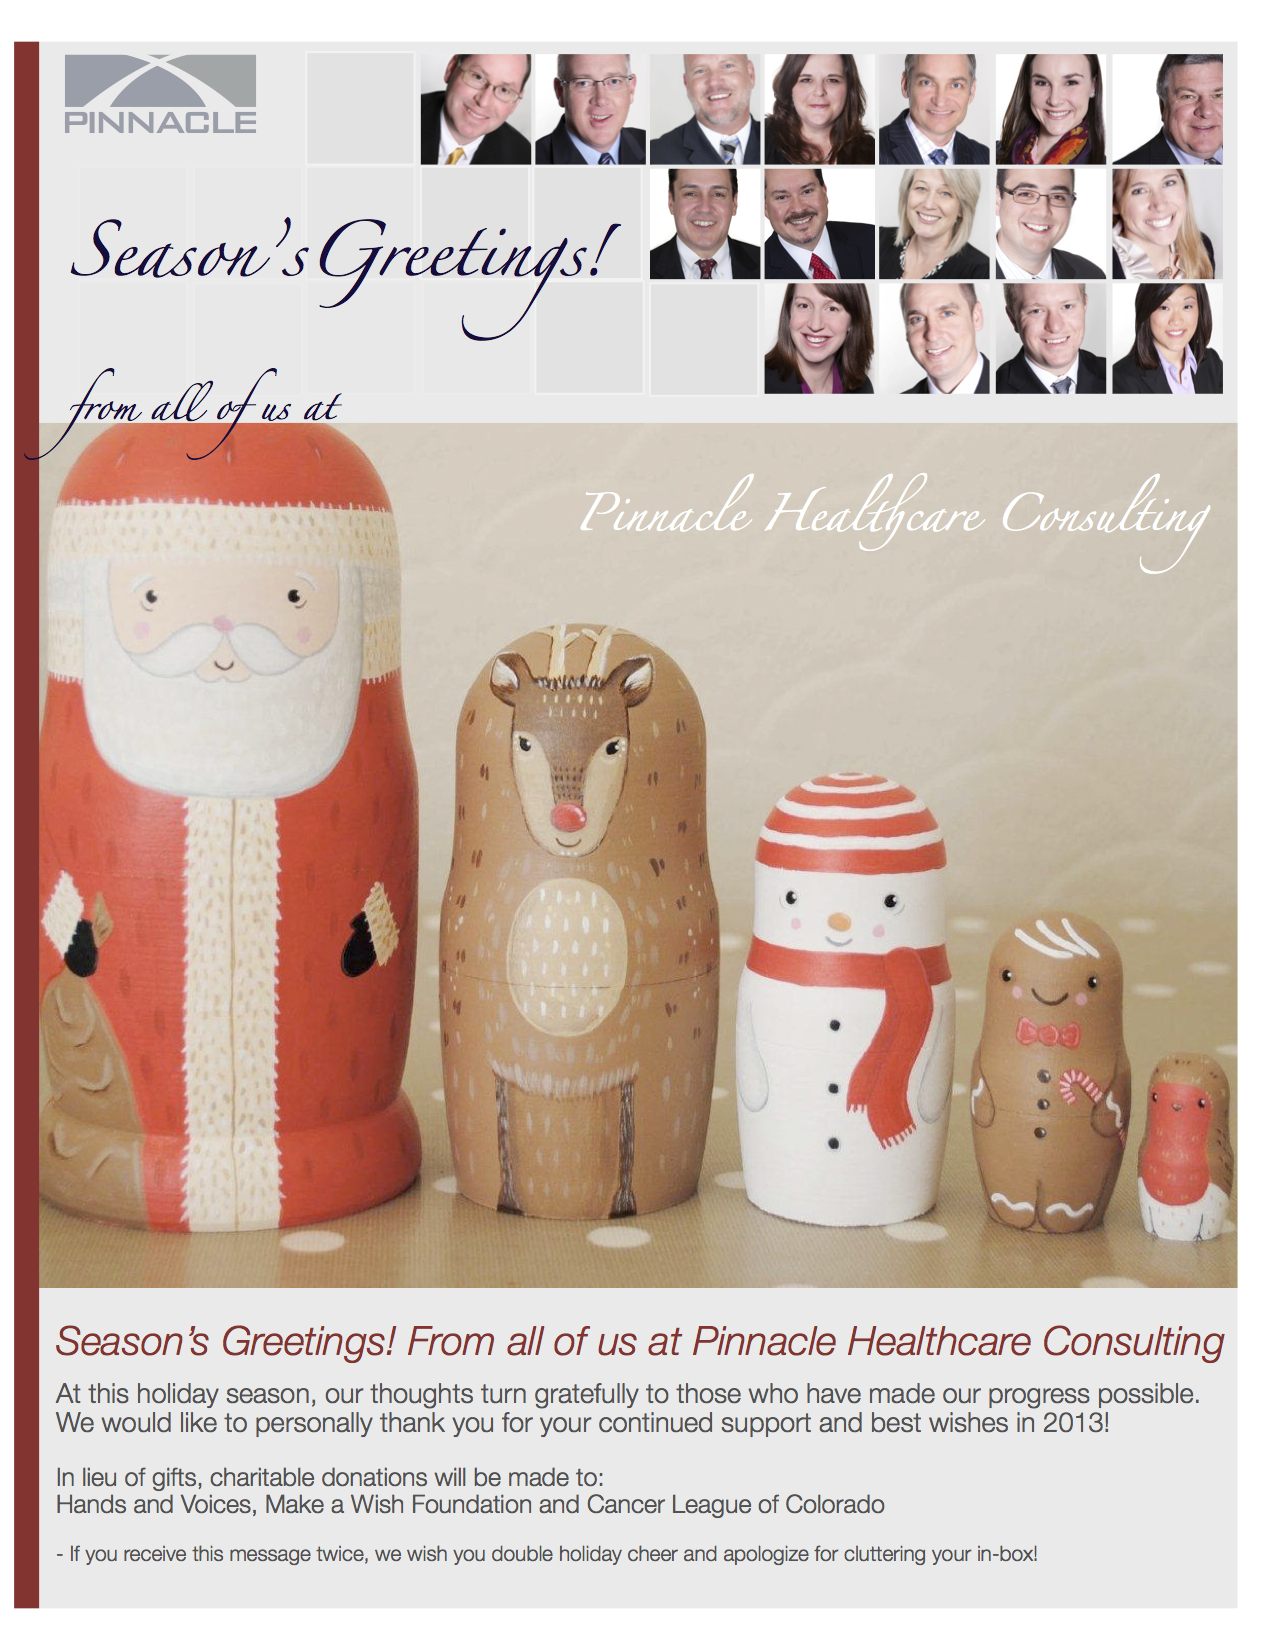 Pinnacle 2012 Seasons Greetings